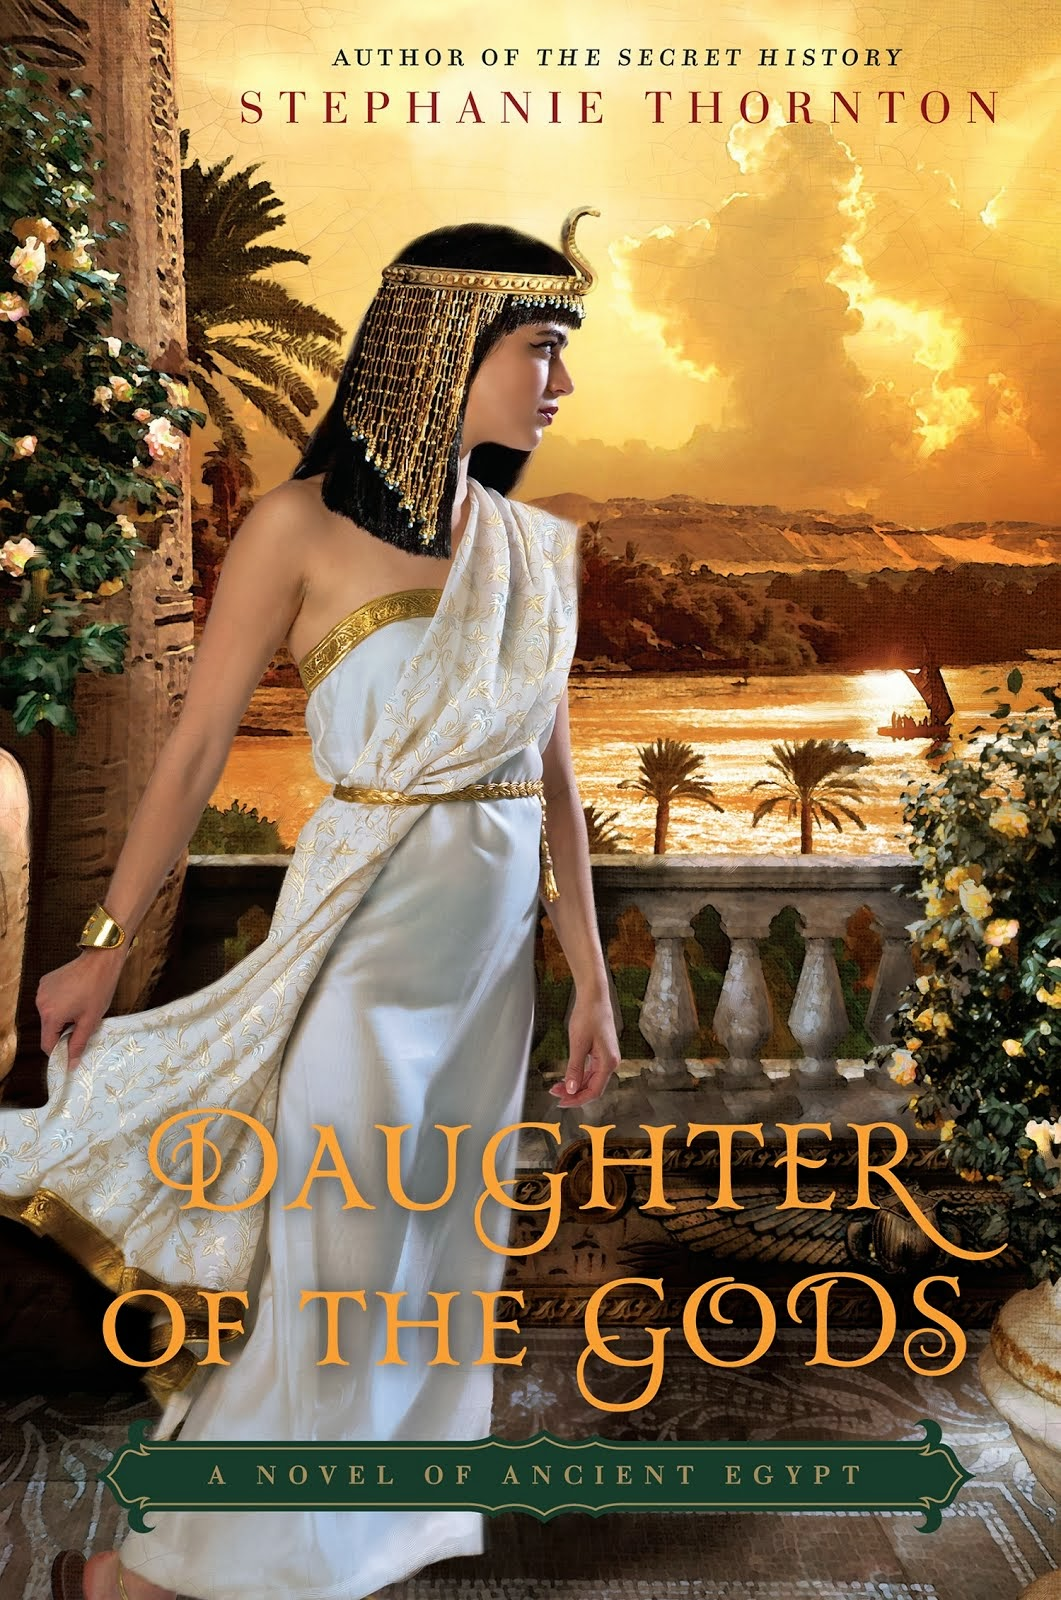 Pre-Order DAUGHTER OF THE GODS (Available May 6, 2014)